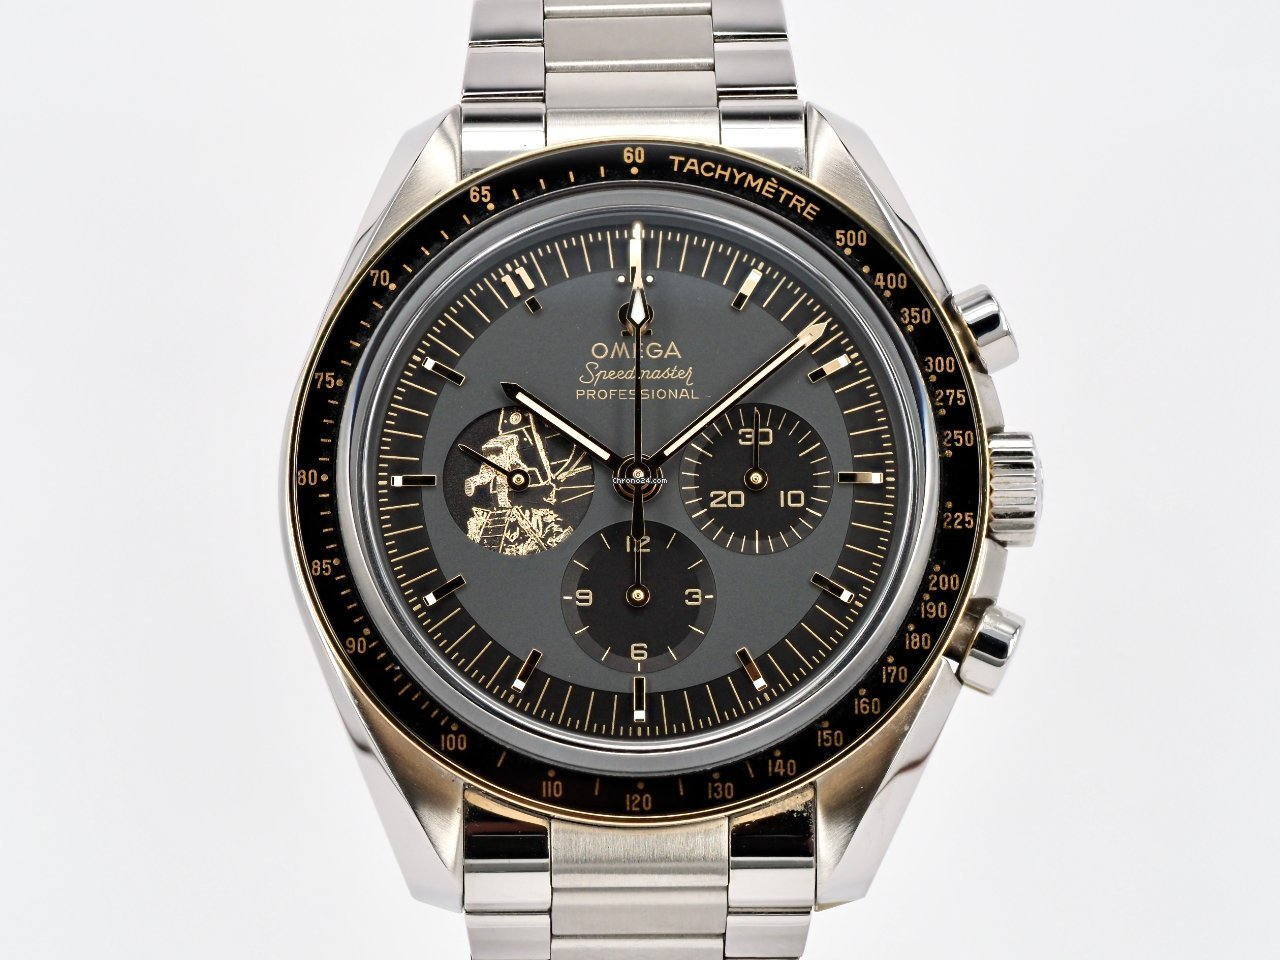 Omega Speedmaster Professional Moonwatch 310.20.42.50.01.001 2019 pre-owned